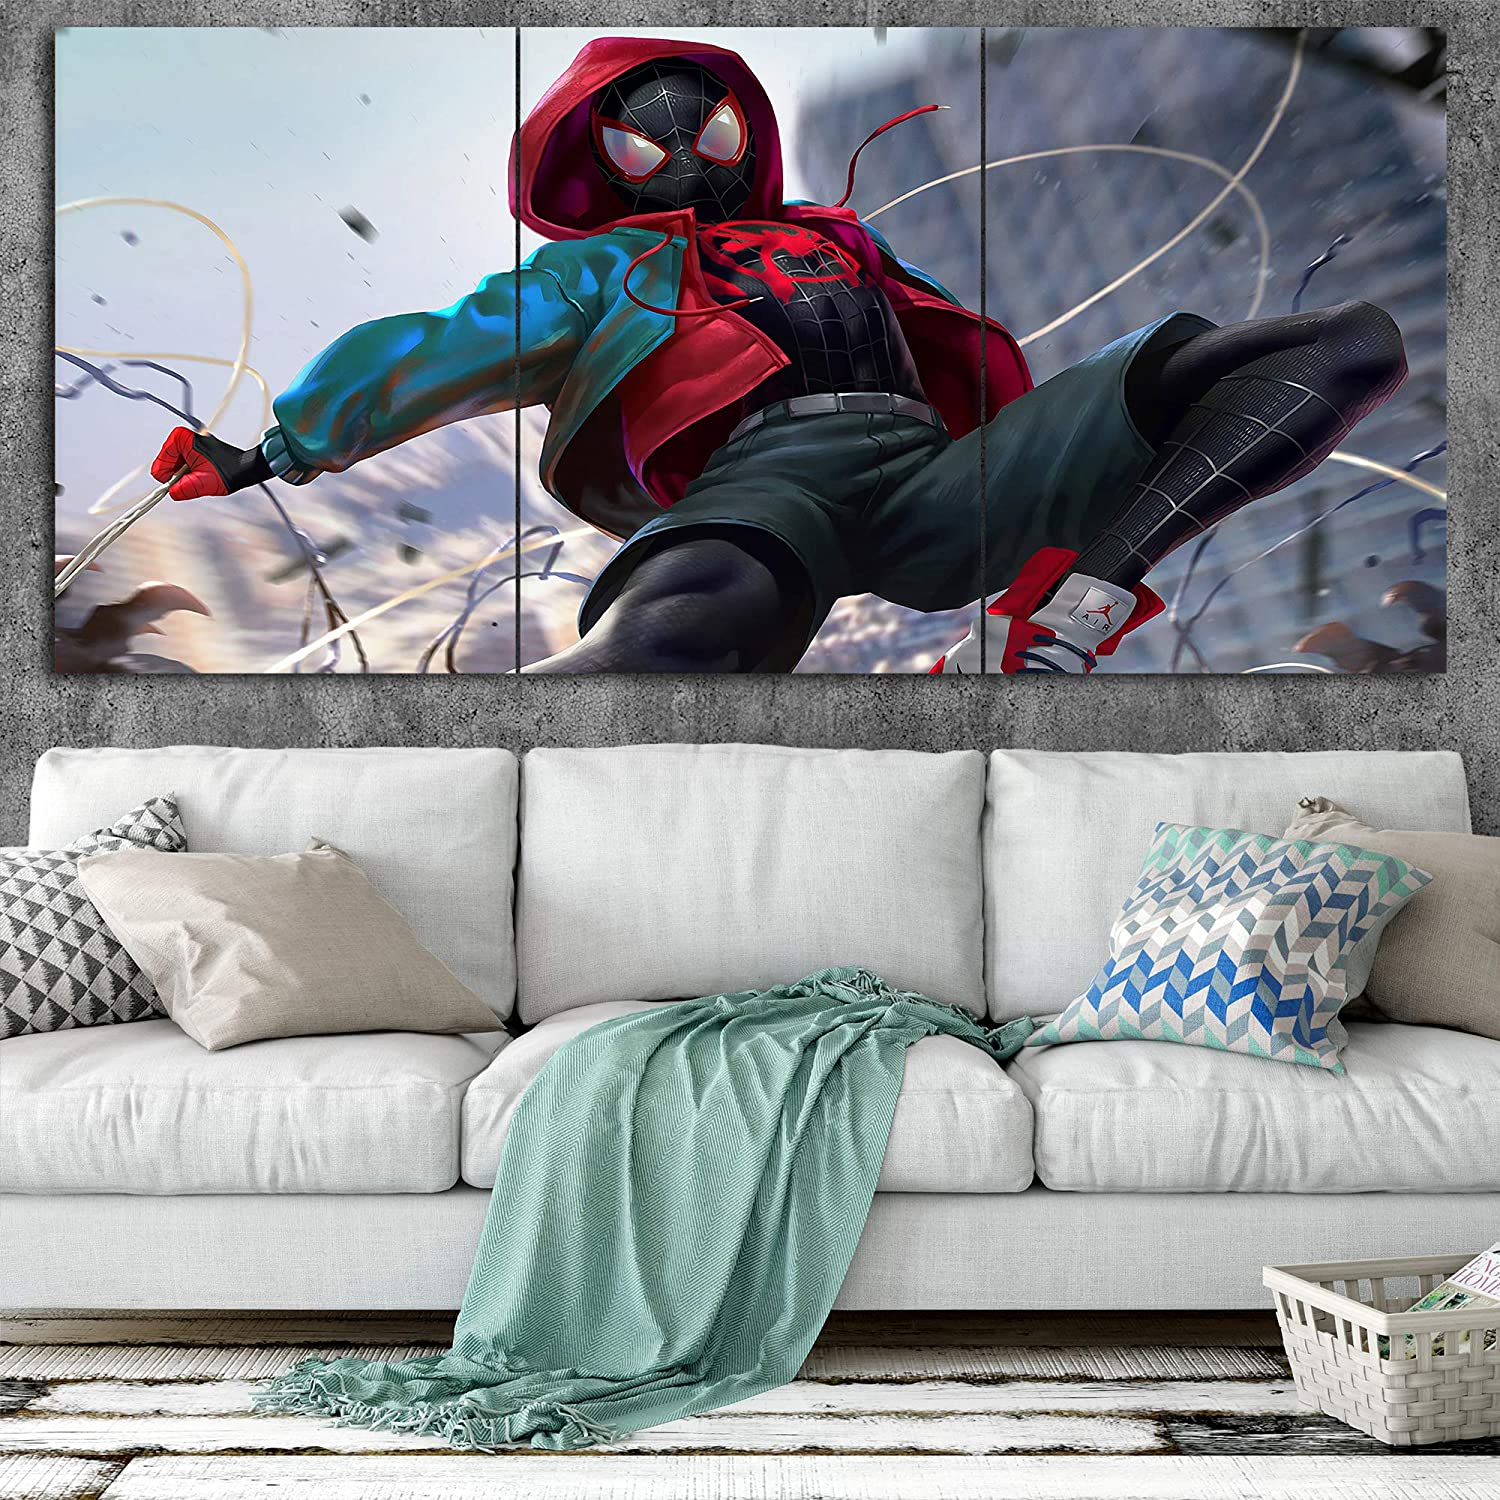 Spiderman Miles Morales C Canvas Posters Home Decor Wall Art 3 Pieces Paintings for Living Room HD Prints Moive Pictures